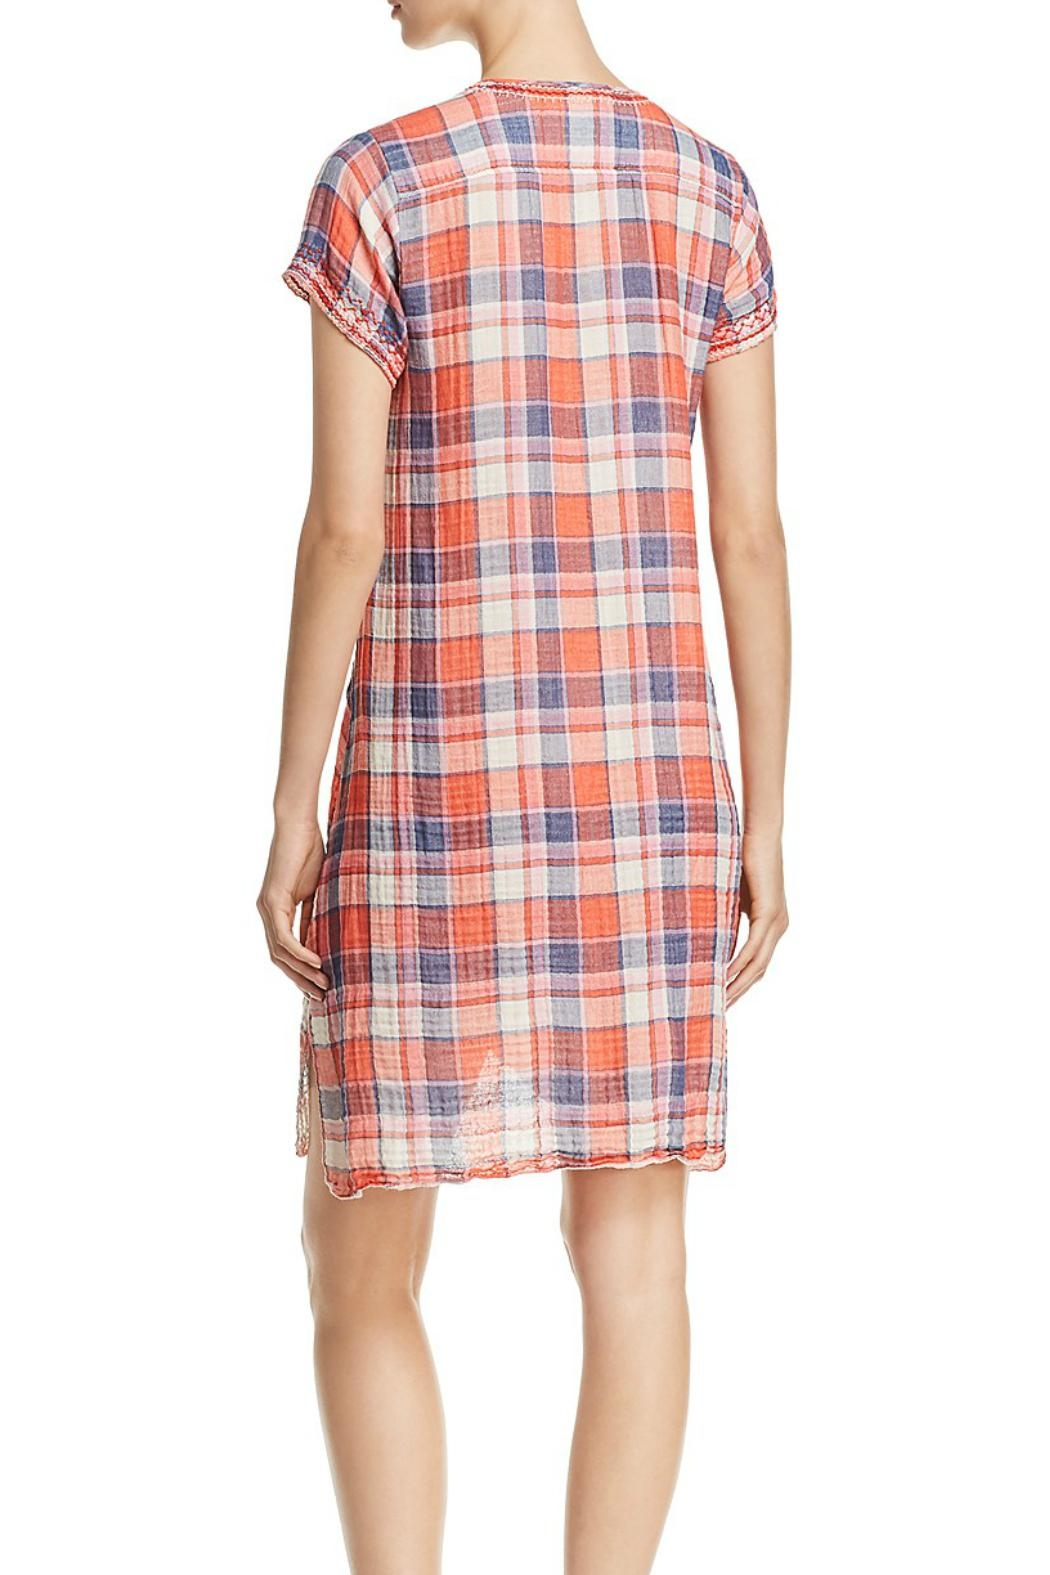 Johnny Was Plaid Tunic/dress - Front Full Image